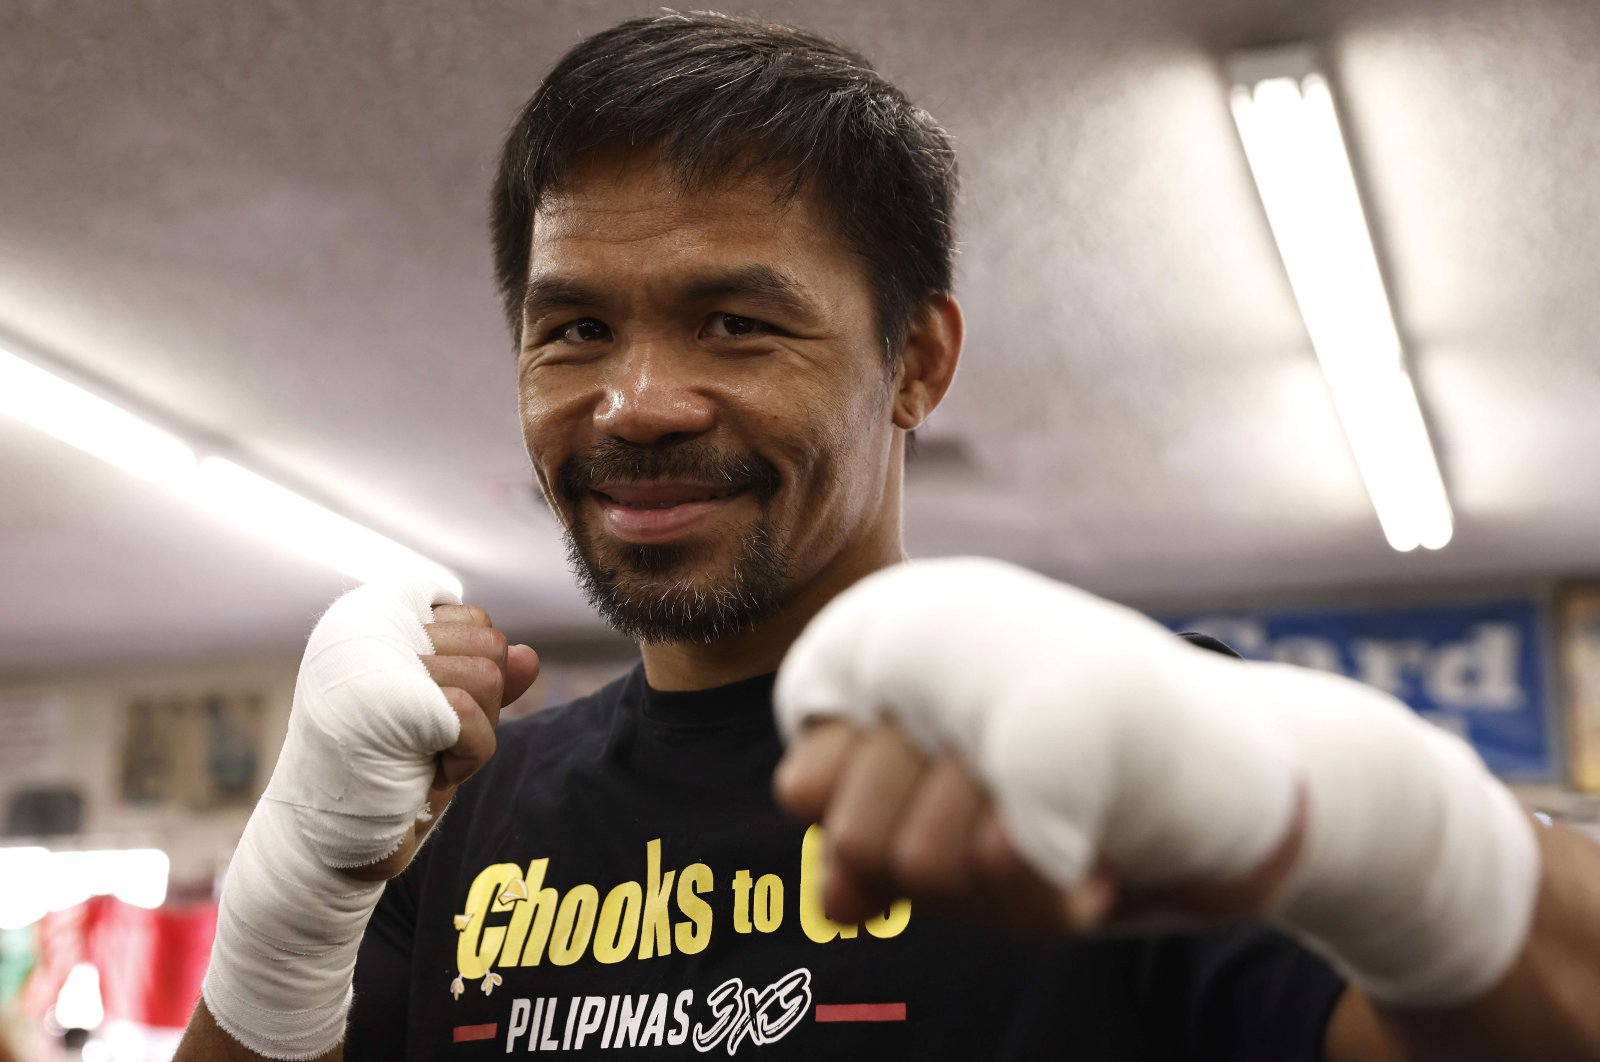 Manny Pacquiao poses for media at Wild Card Boxing Club in Los Angeles, California, U.S., Aug. 04, 2021. (AFP Photo)